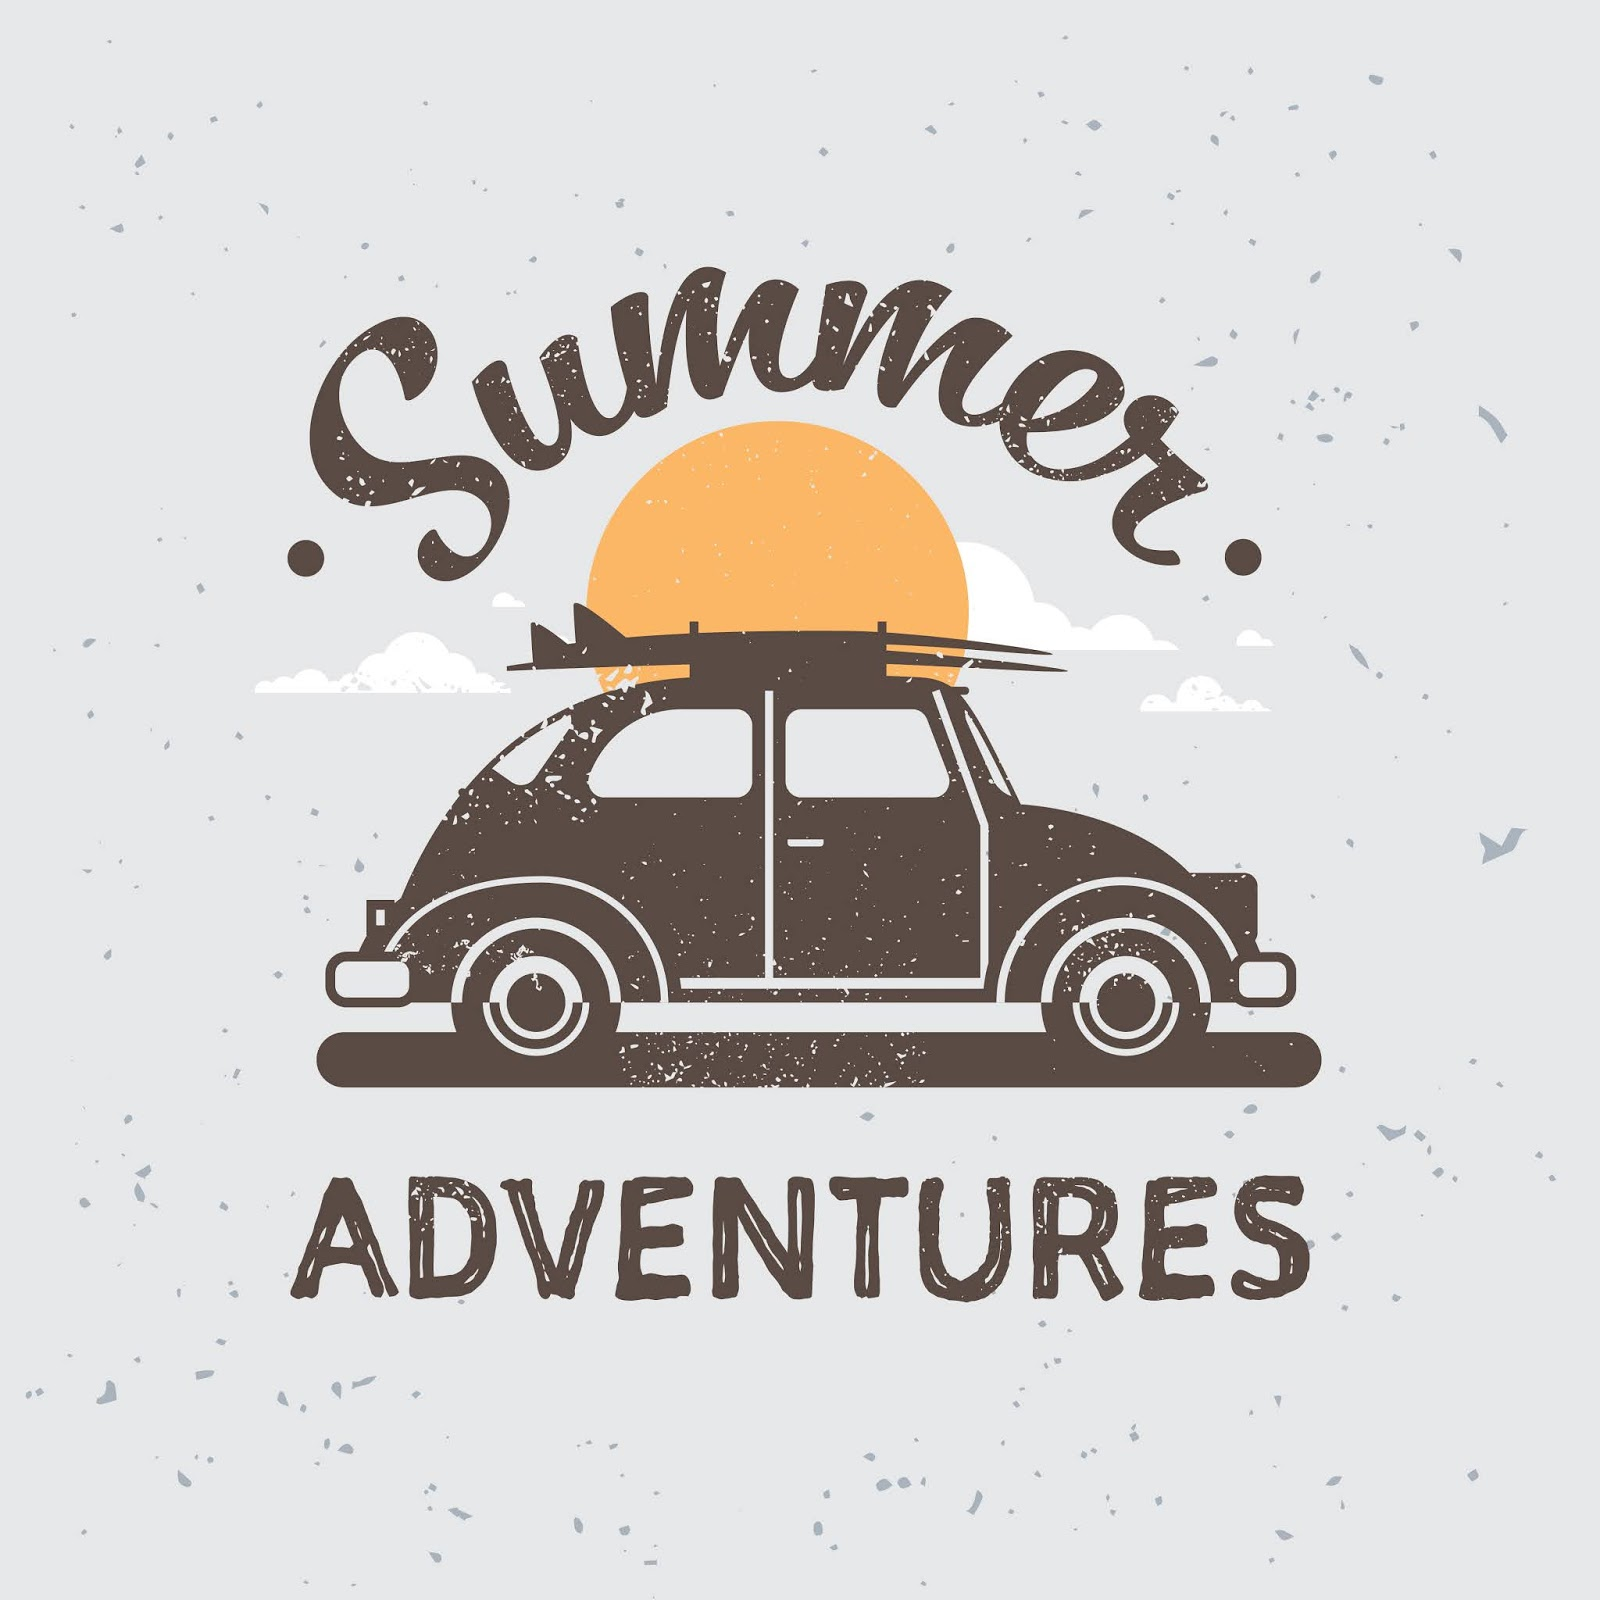 Retro Car Adventures With Luggage Roof Sunset Surfing Vintage Free Download Vector CDR, AI, EPS and PNG Formats